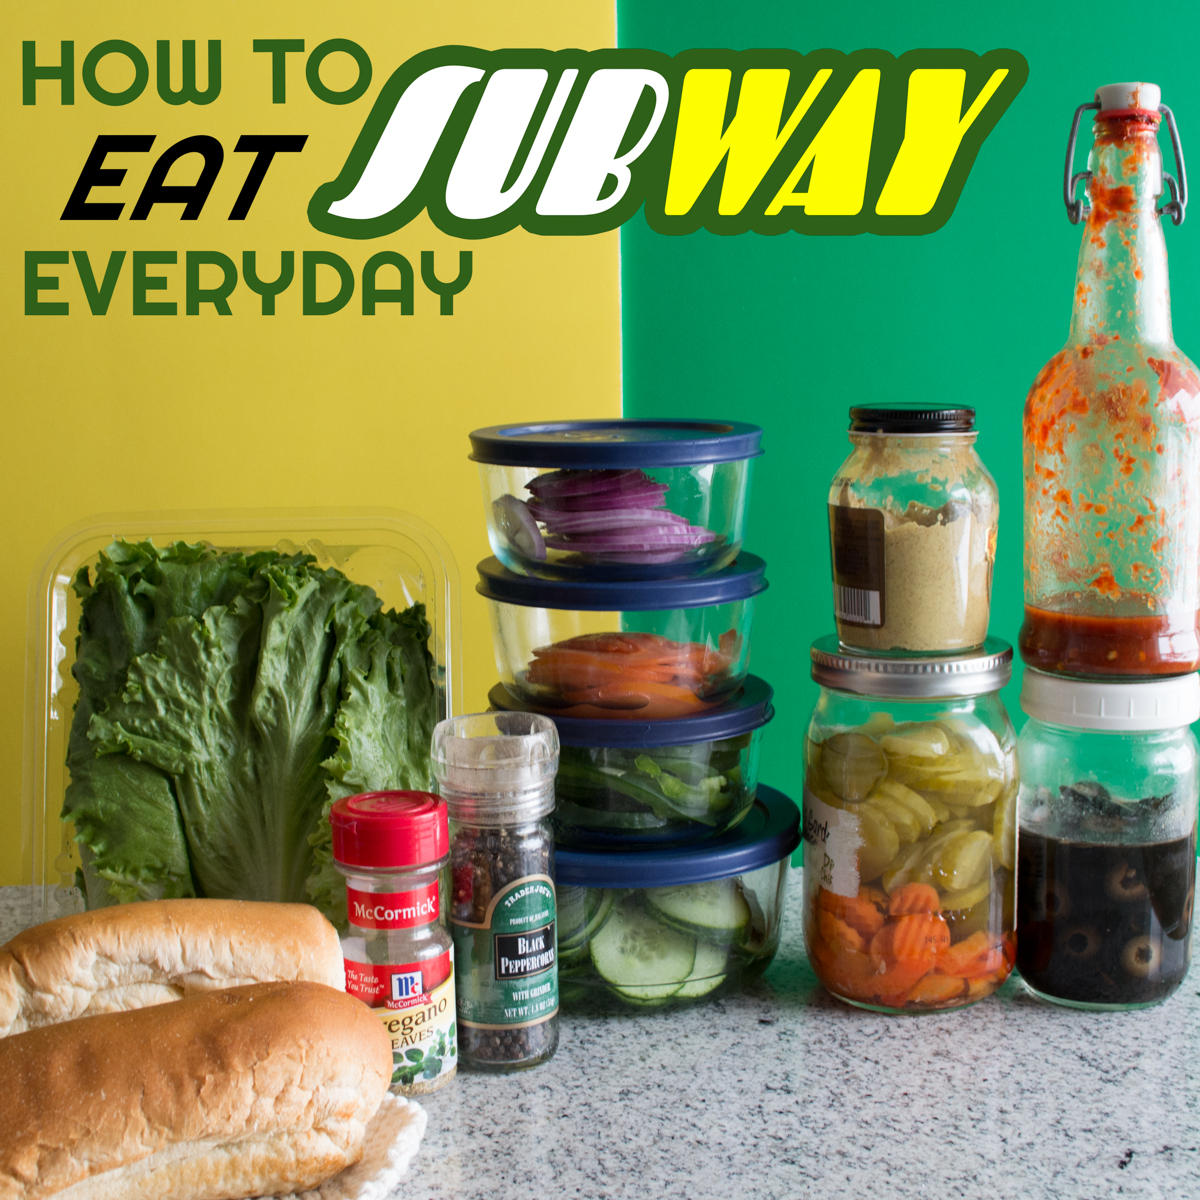 How to Eat Subway Everyday | Feed Your Skull